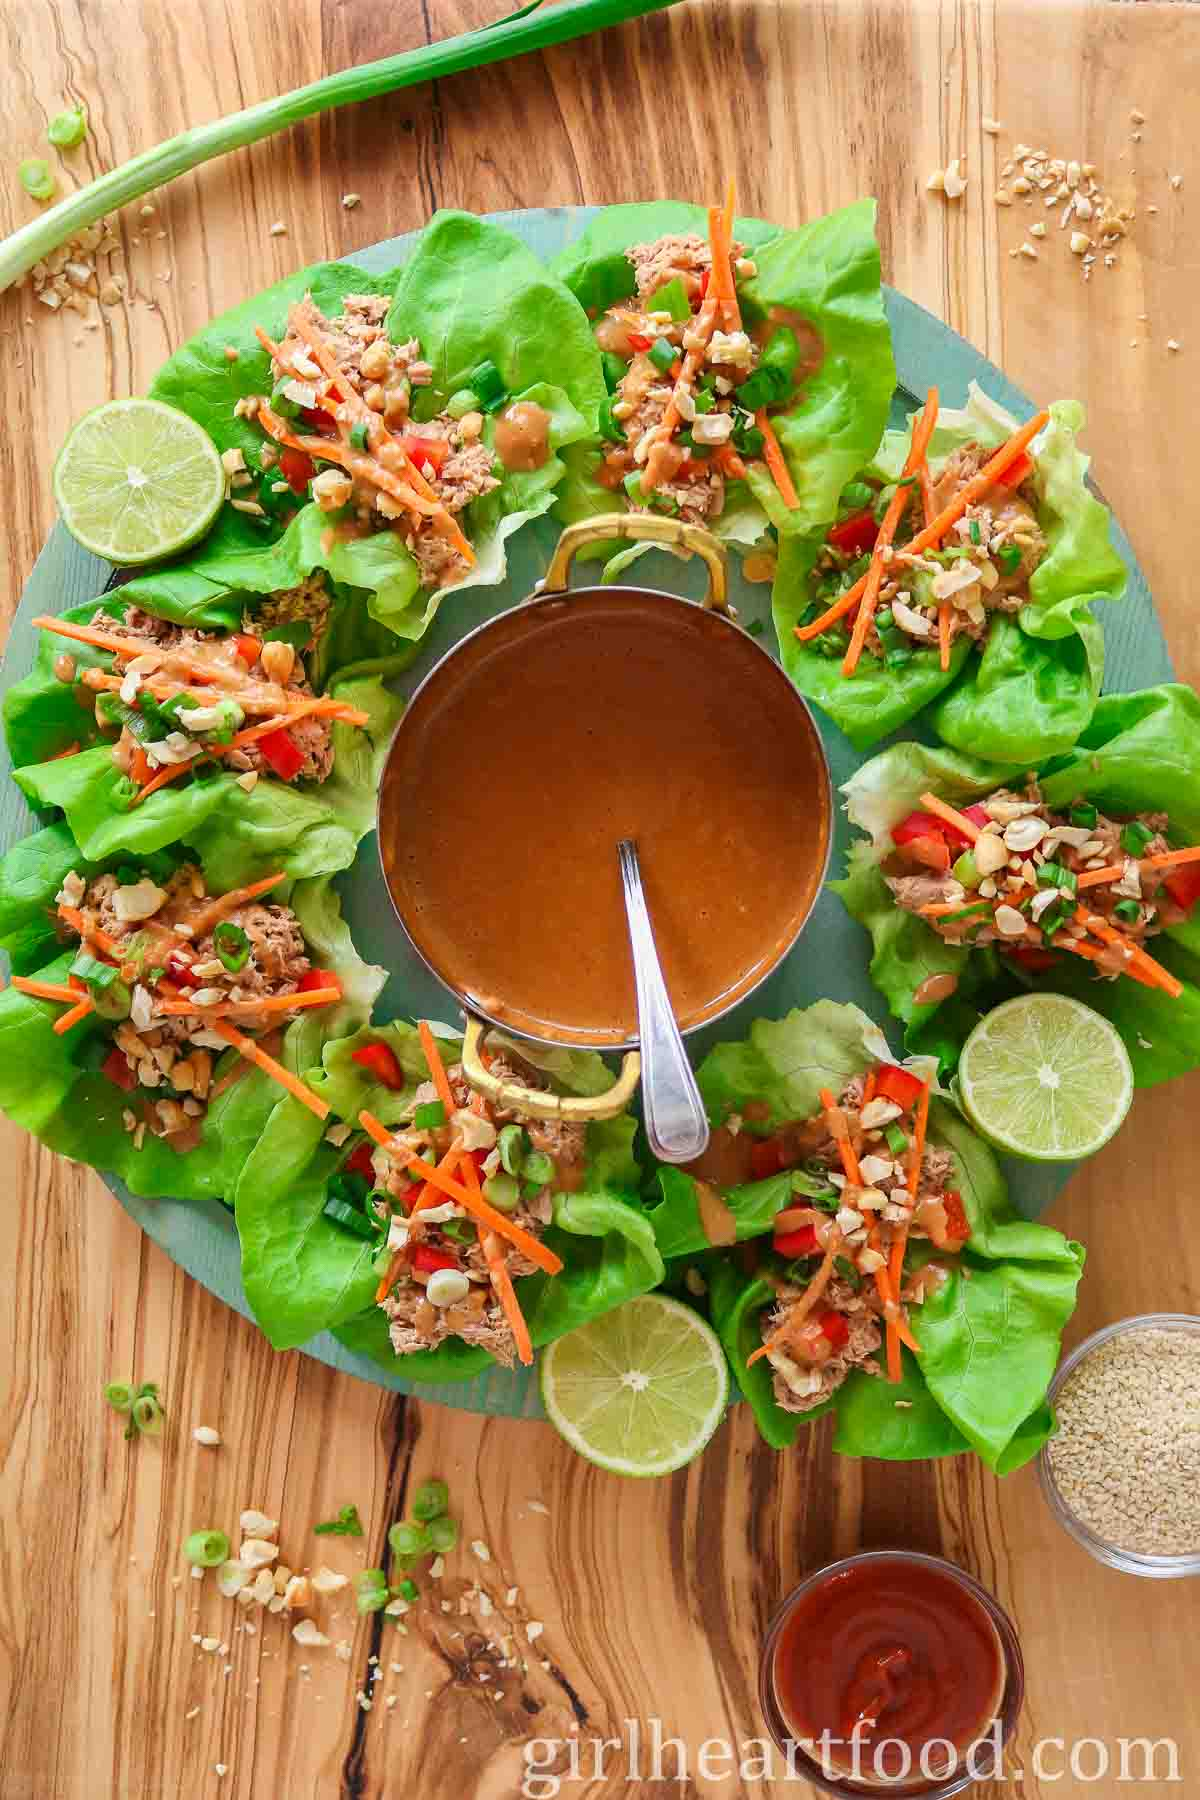 Platter of tuna lettuce wraps with a small pot of peanut sauce in the centre.